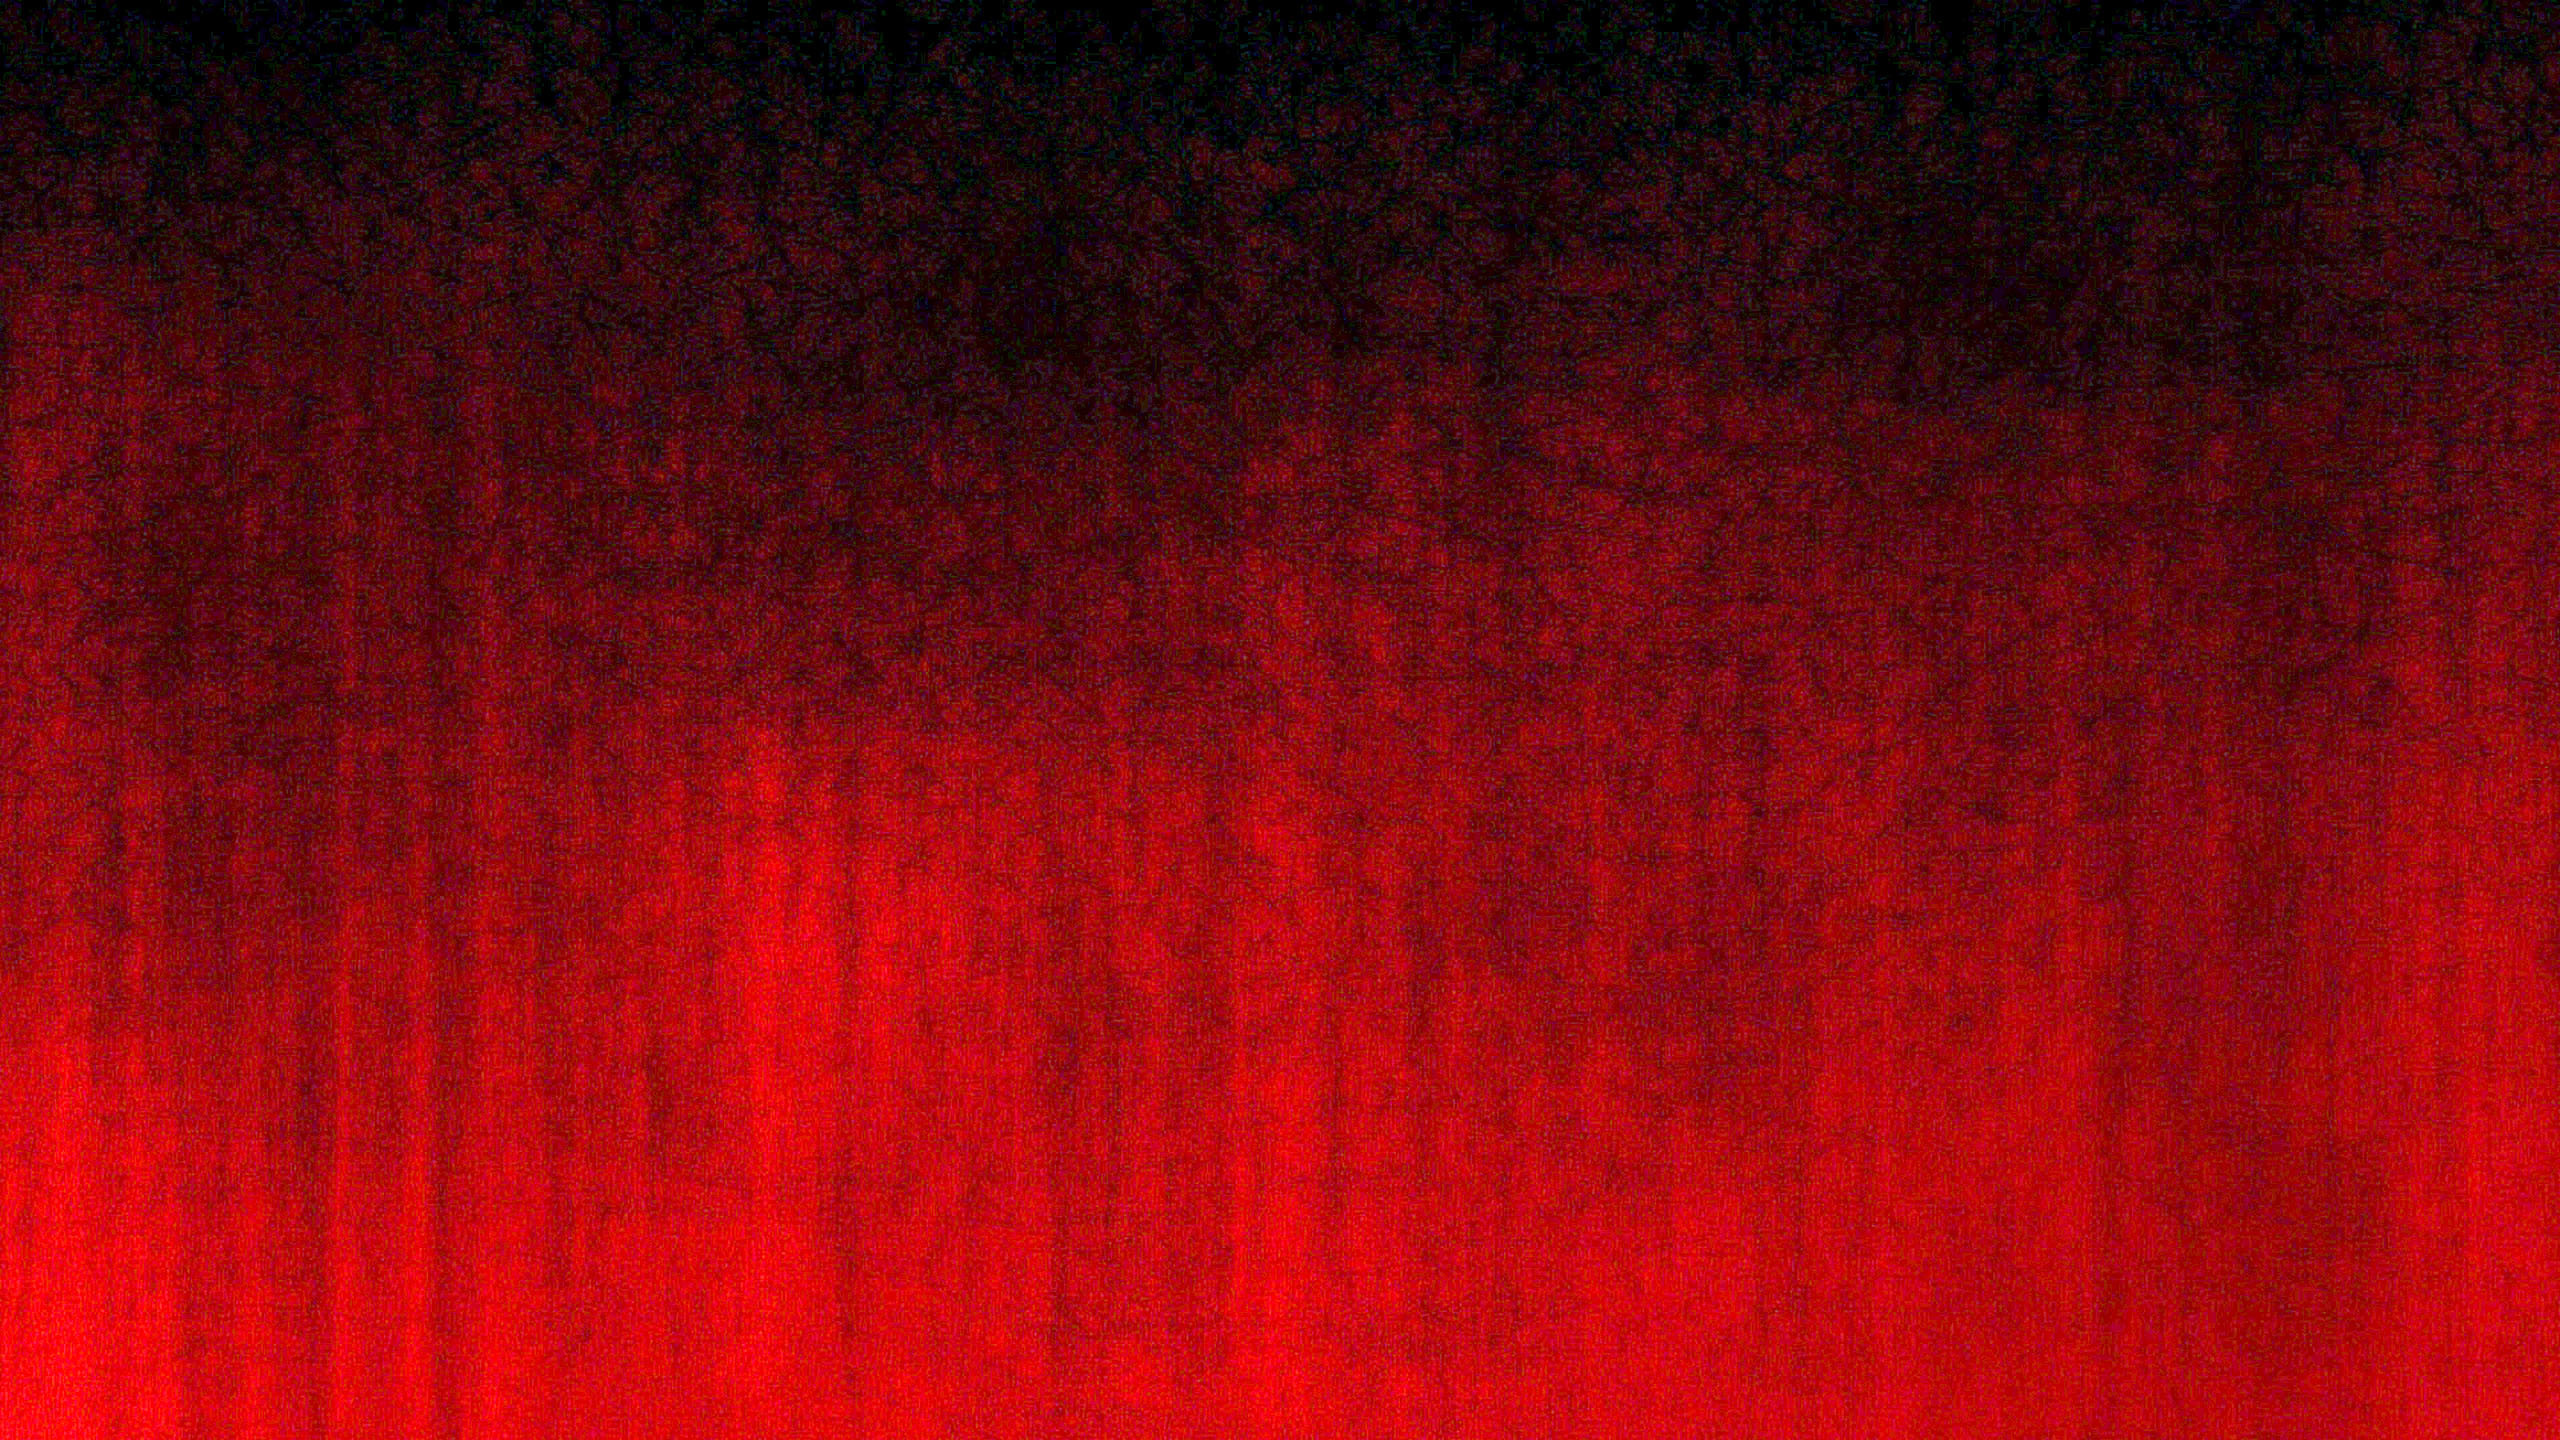 … Black Red Grunge Texture At Dragway 2017 free powerpoint background